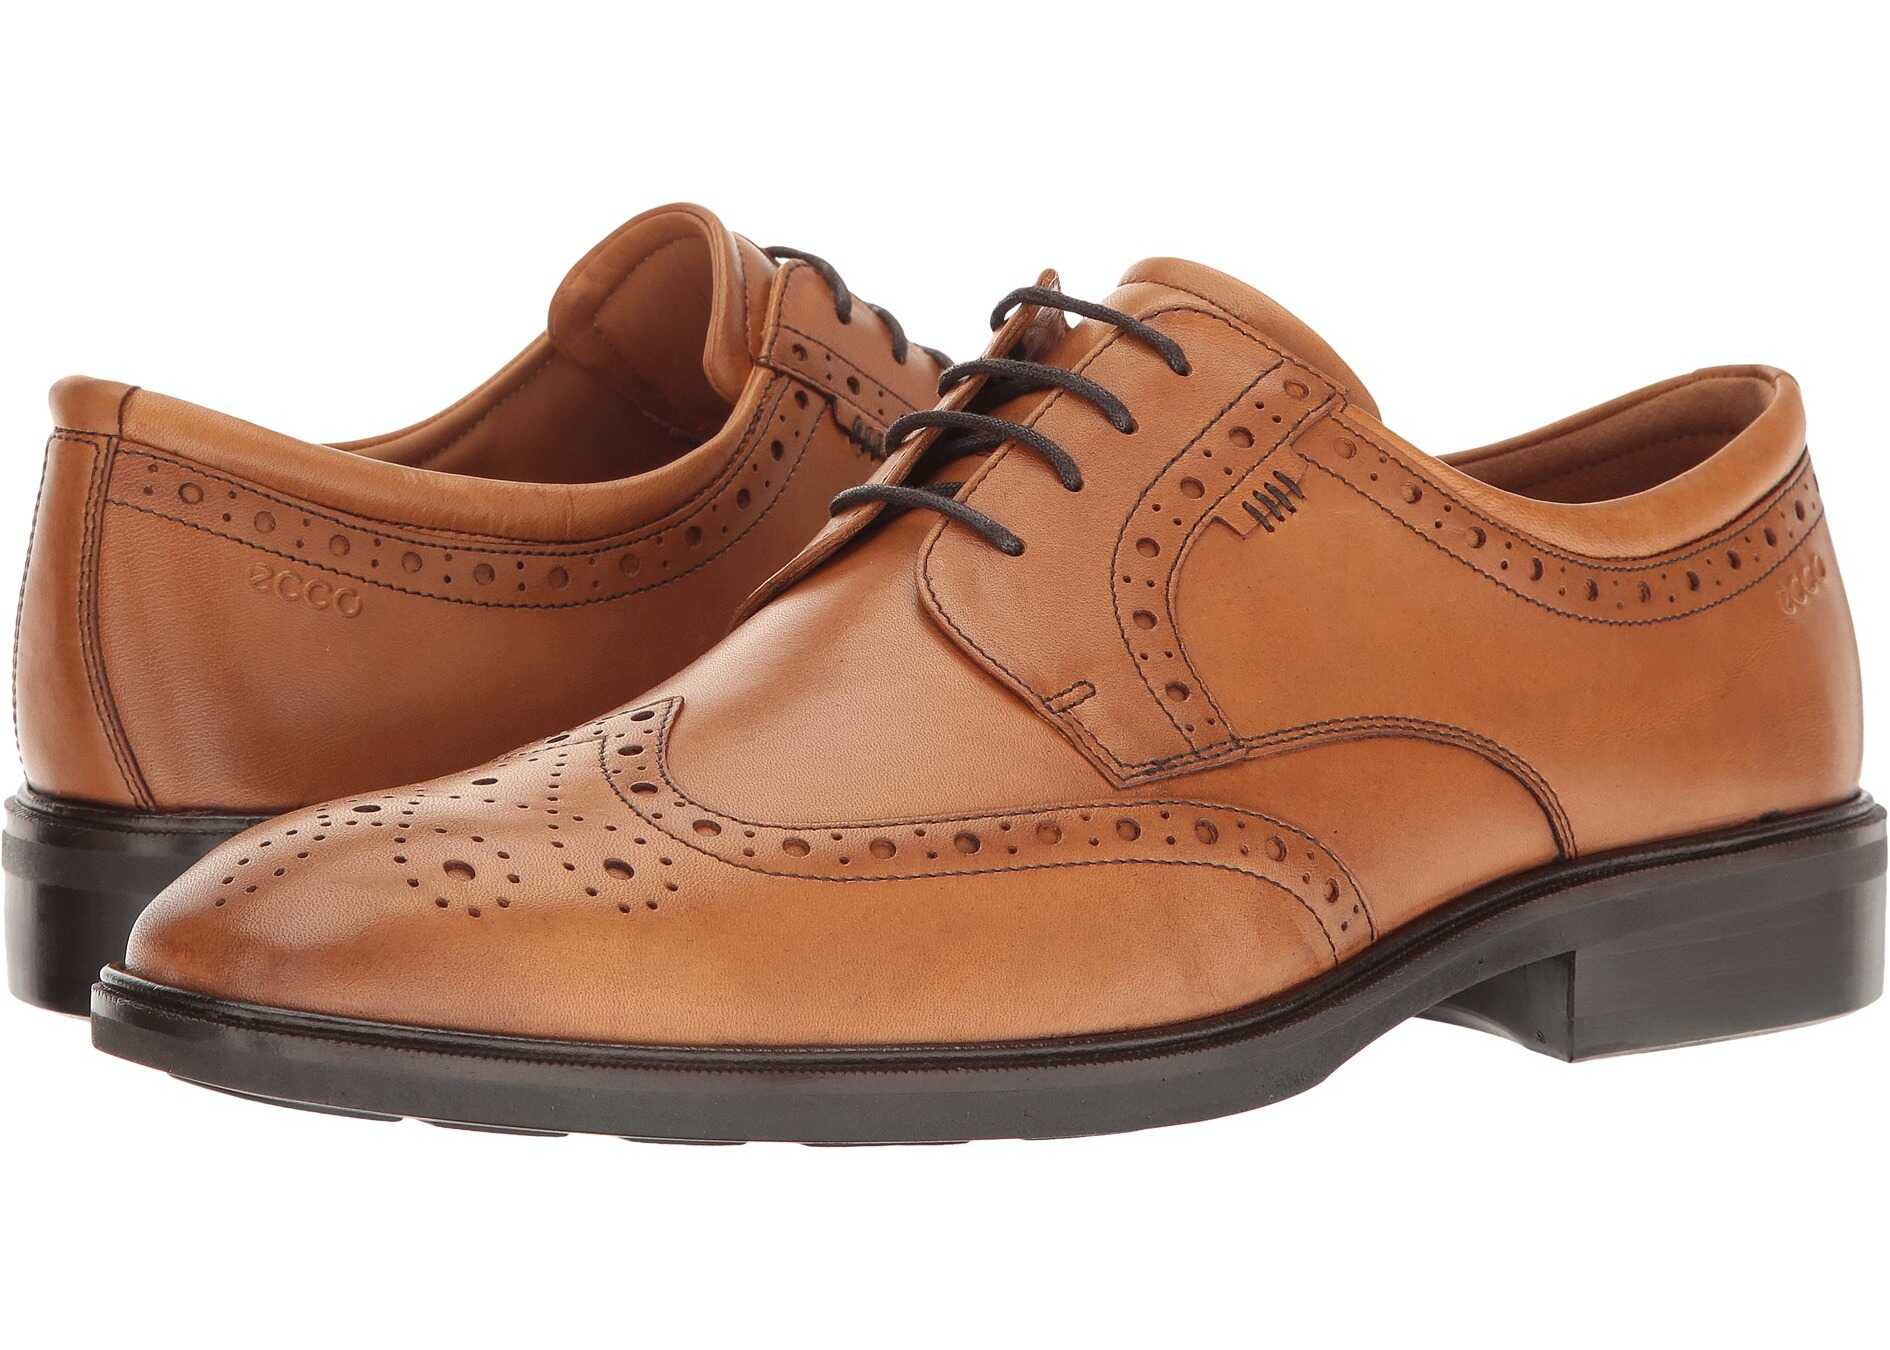 ECCO Illinois Wing Tip Tie Amber